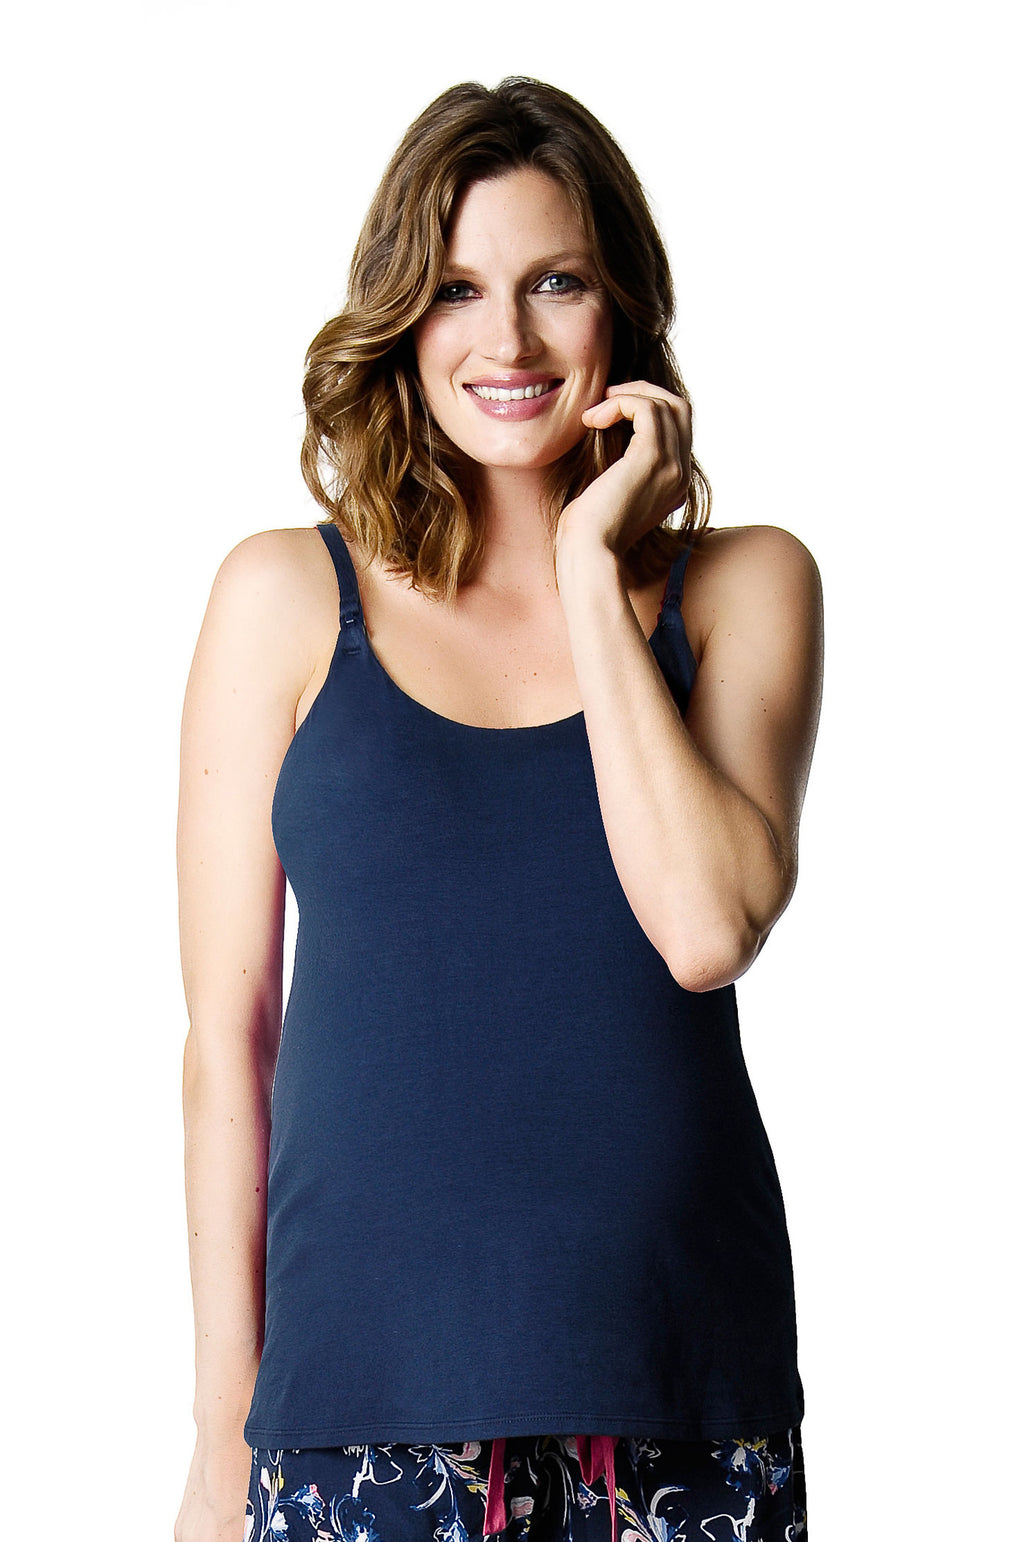 MY EVERYDAY NAVY CAMISOLE B-E or F-H CUP